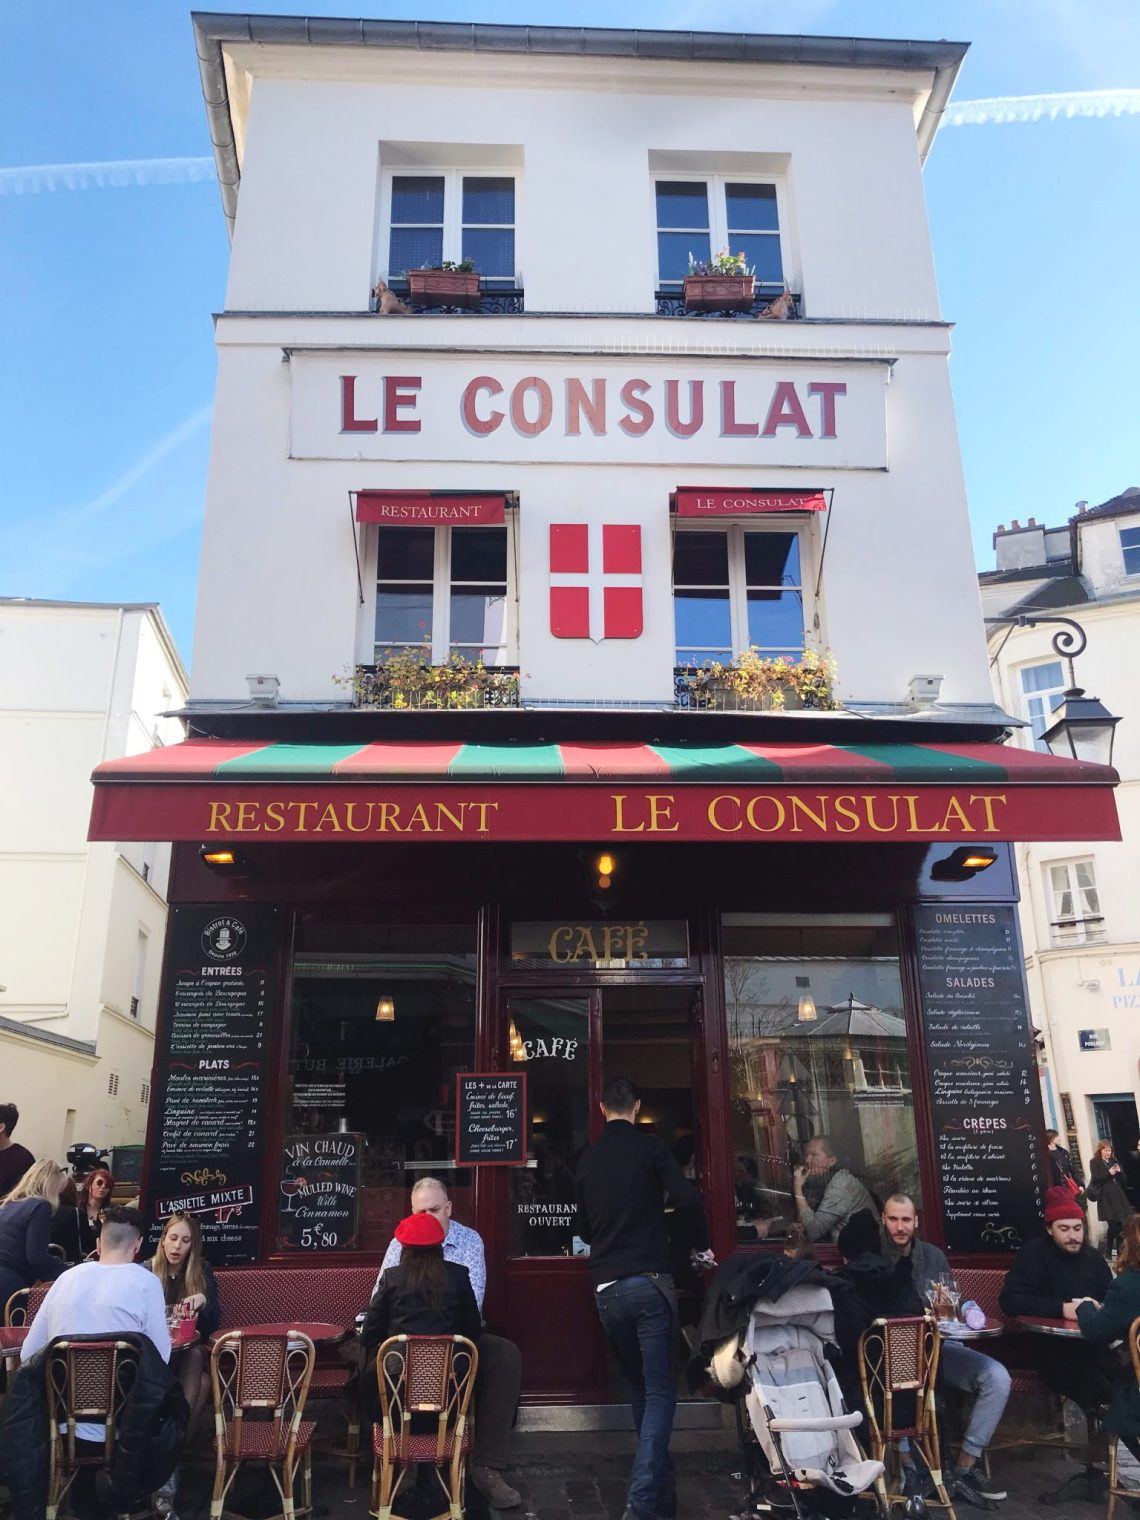 Le consulat restaurant paris france